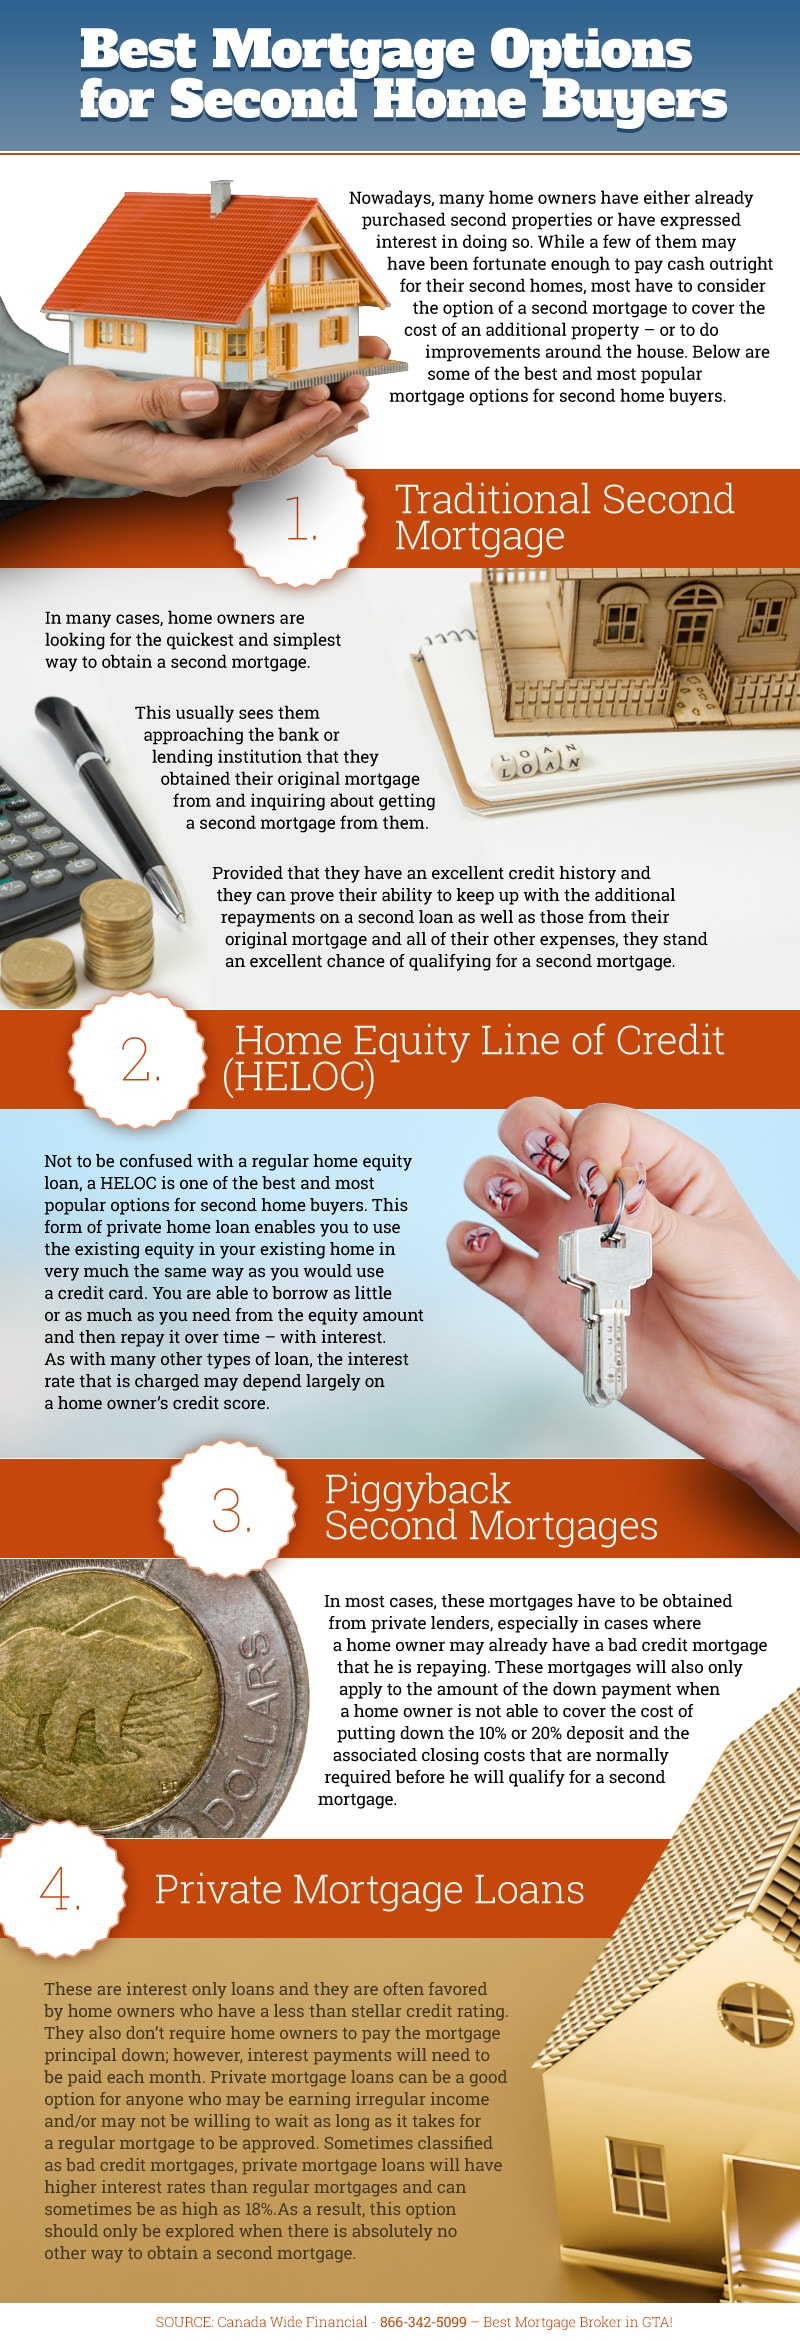 Best Mortgage Options for Second Home Buyers